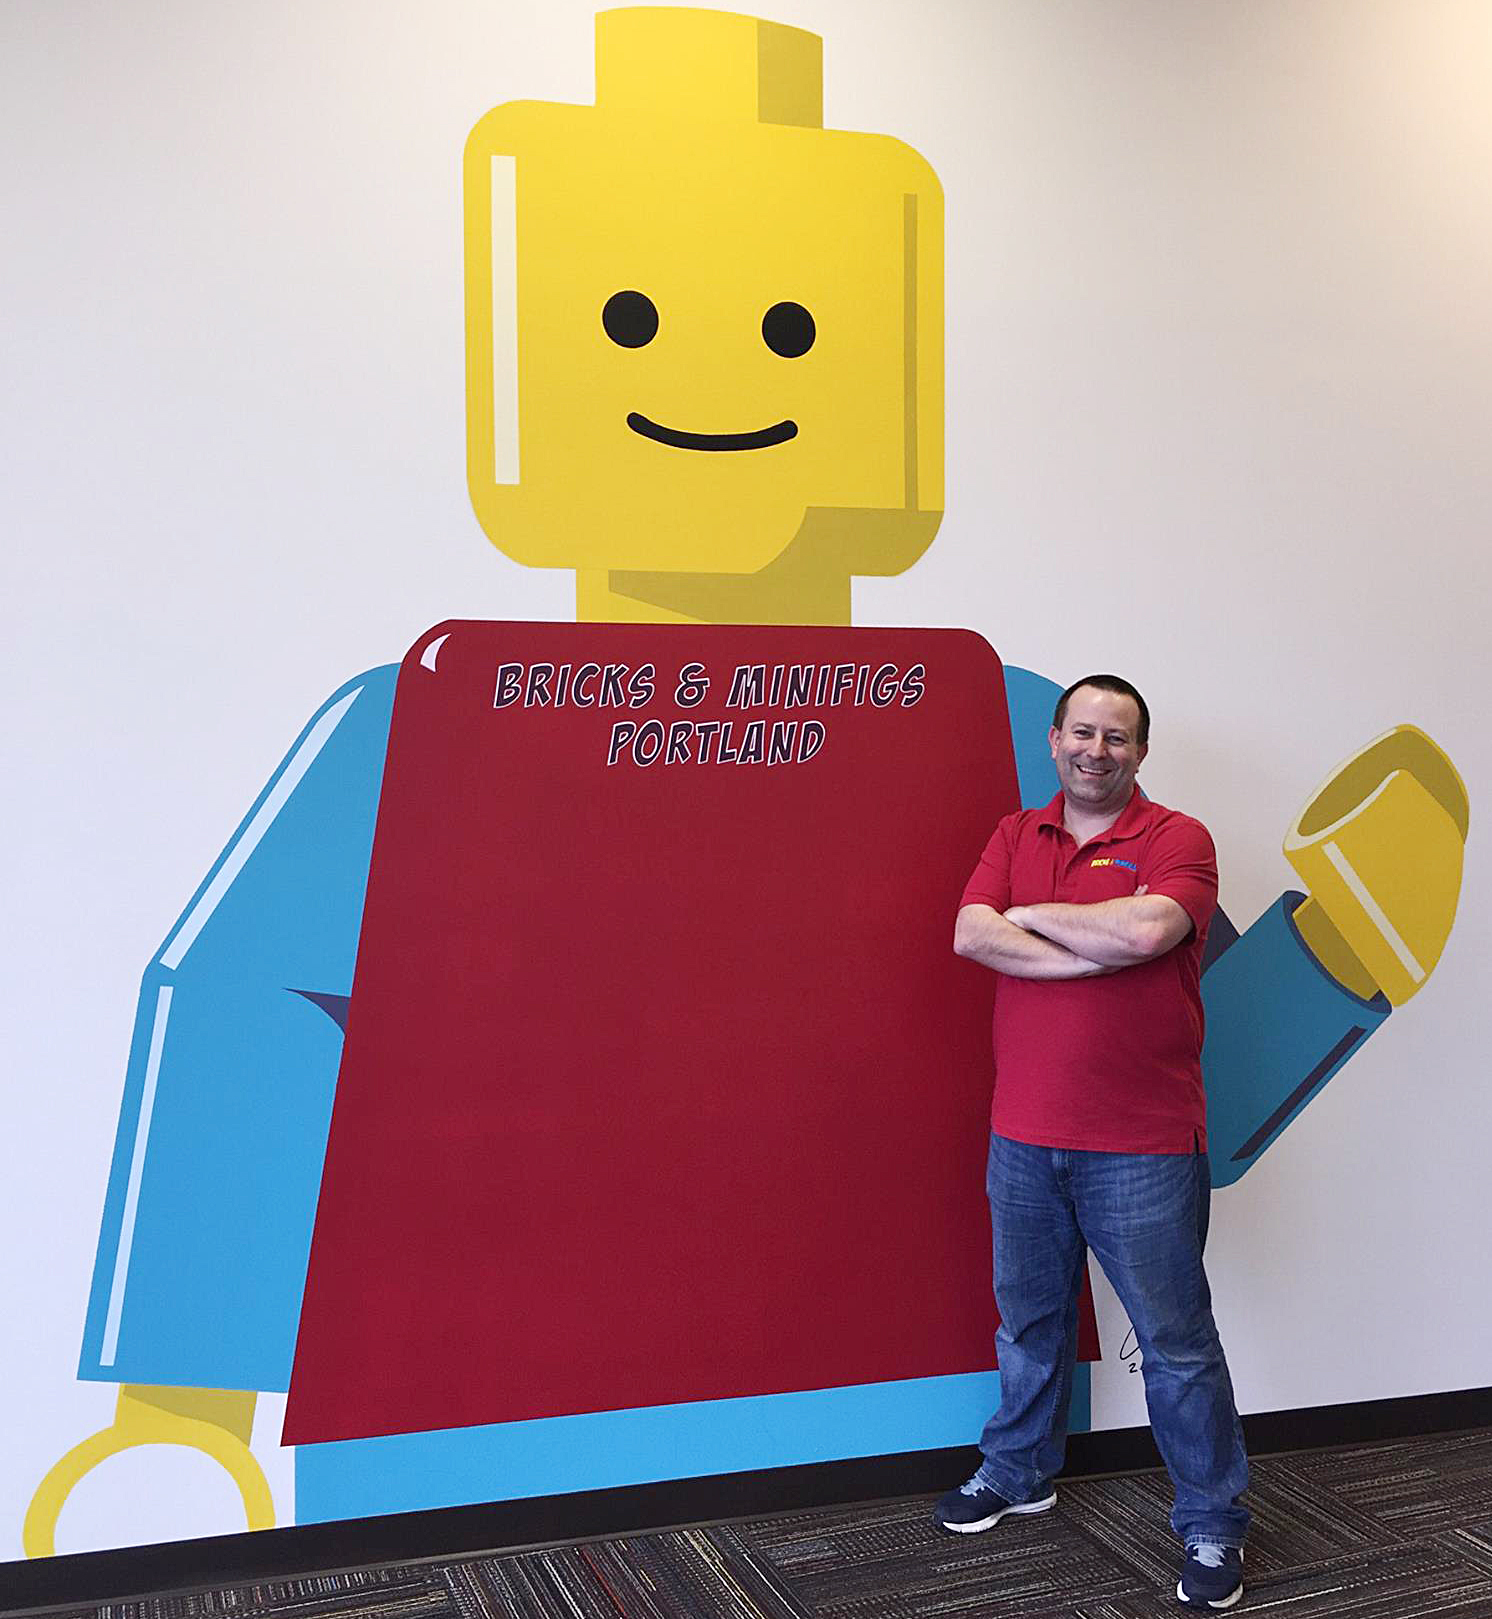 John Masek, CEO of Bricks and Minifigs